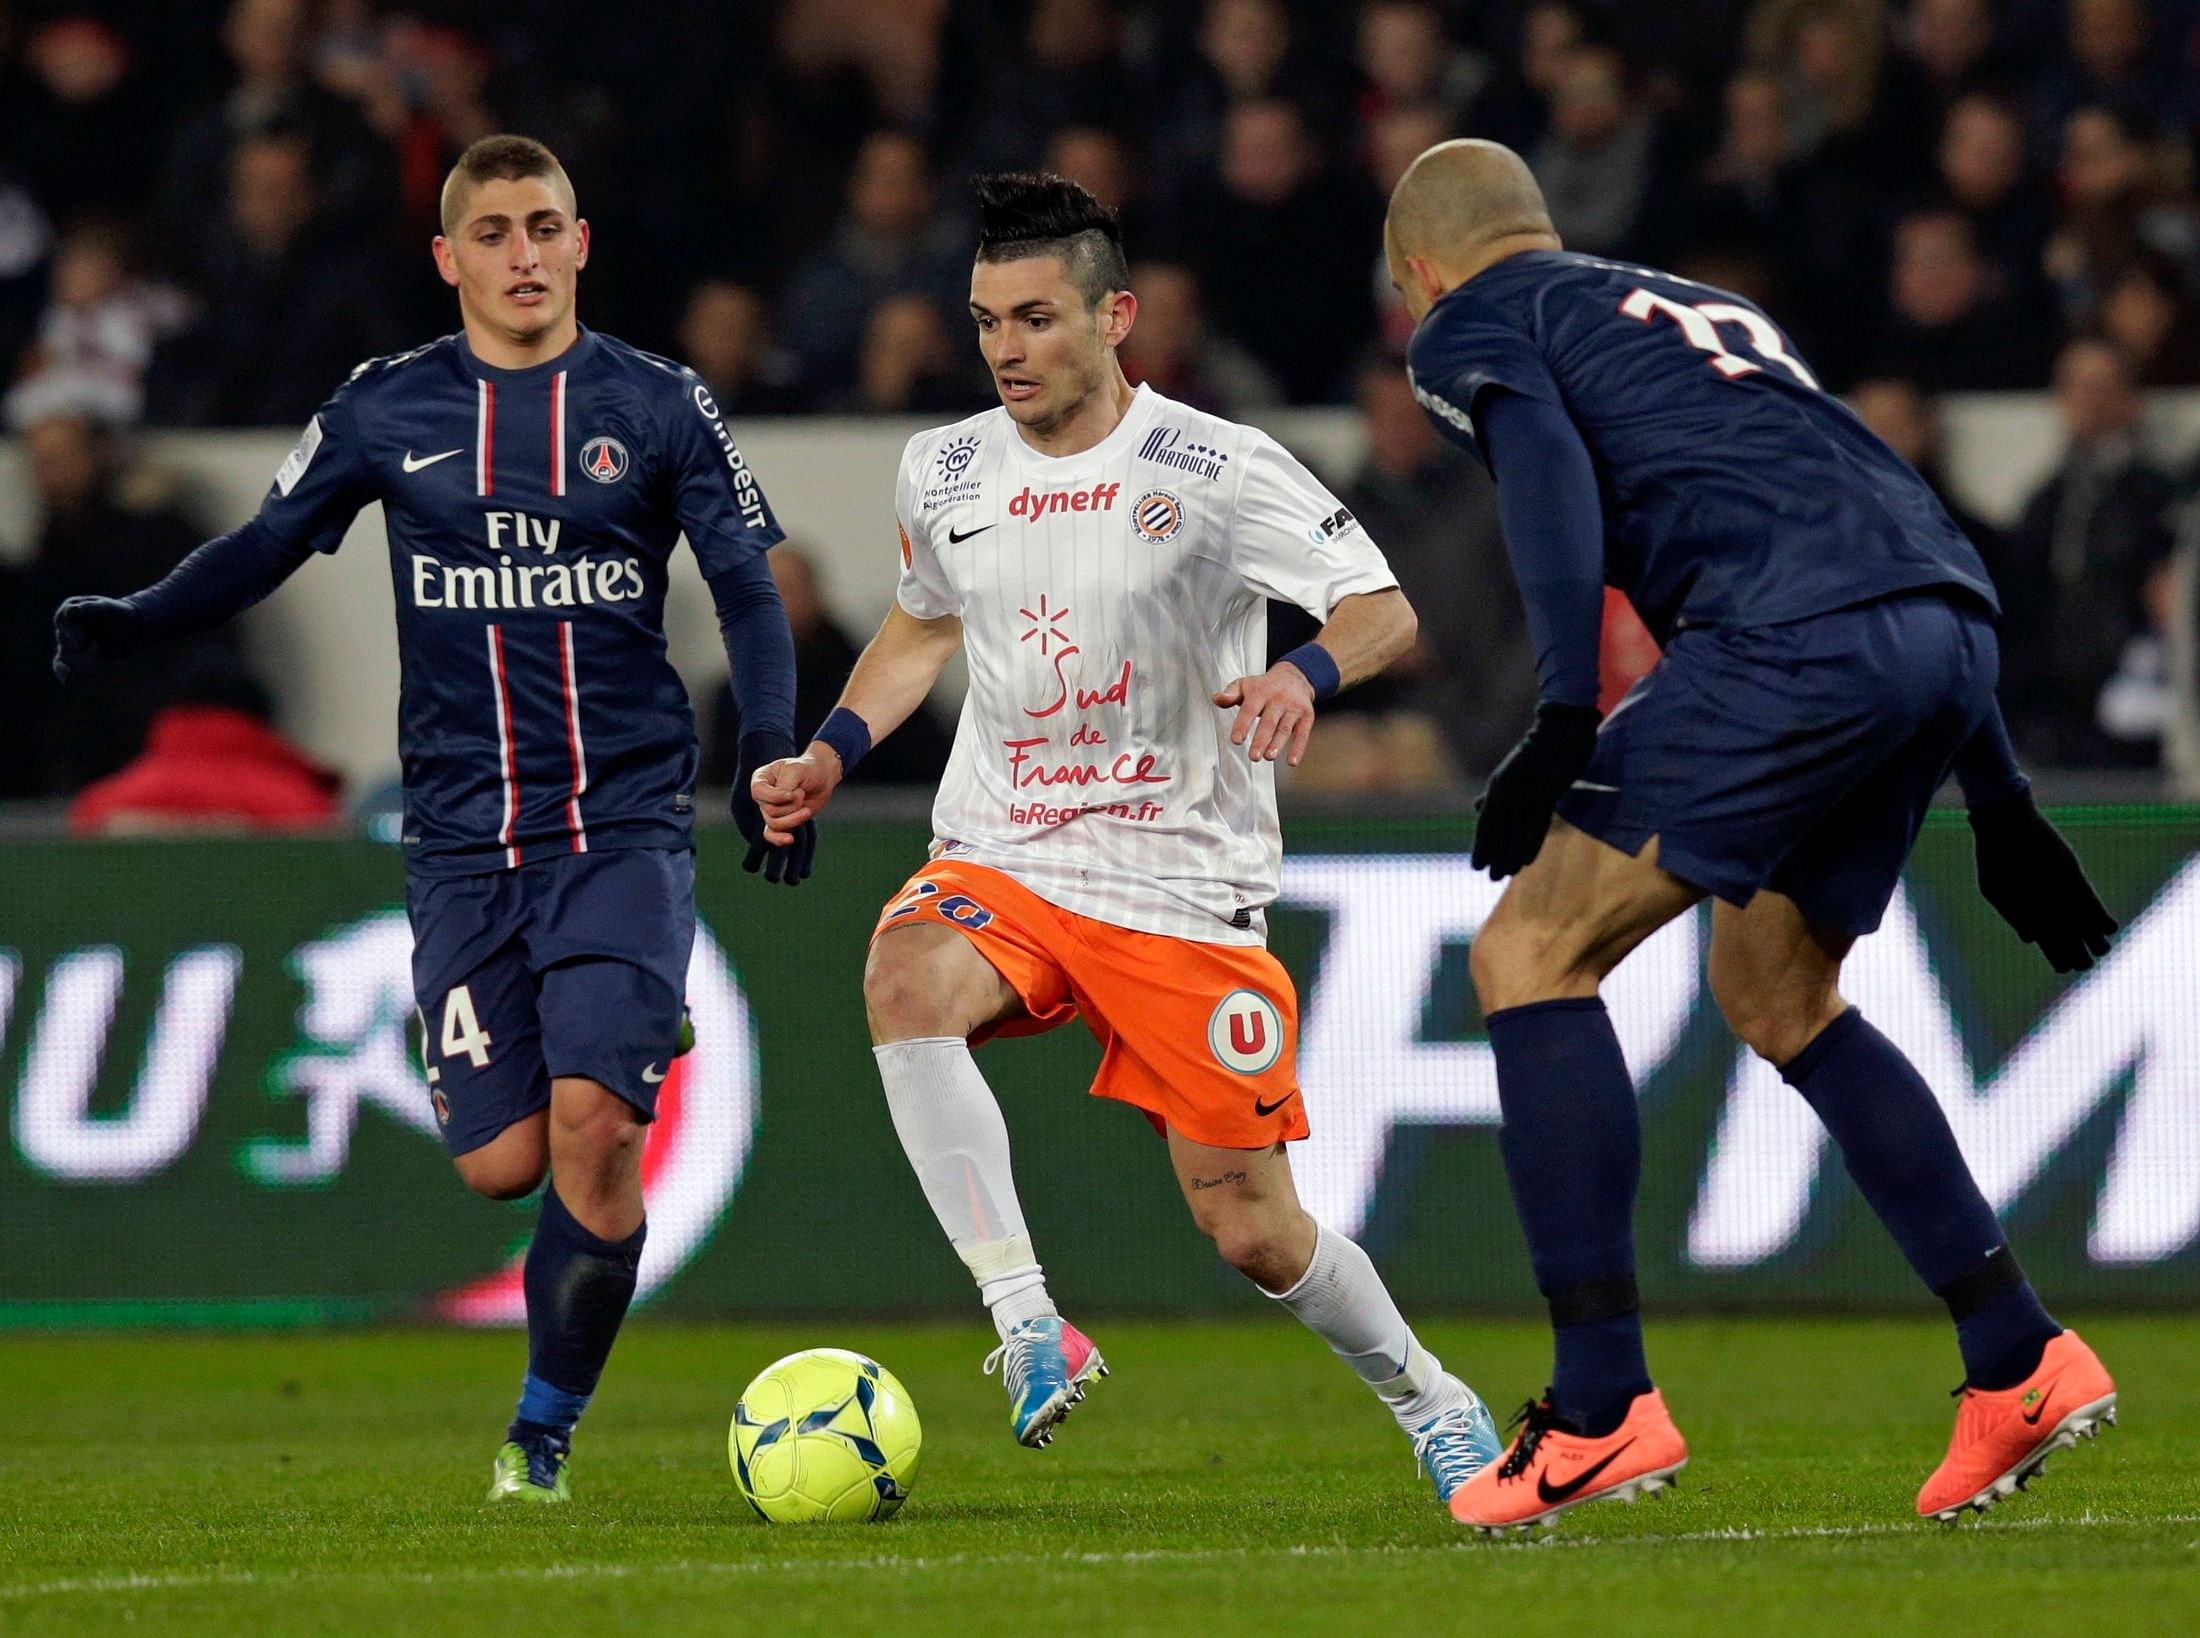 Montpellier midfielder Remy Cabella: Manchester United would be a dream move